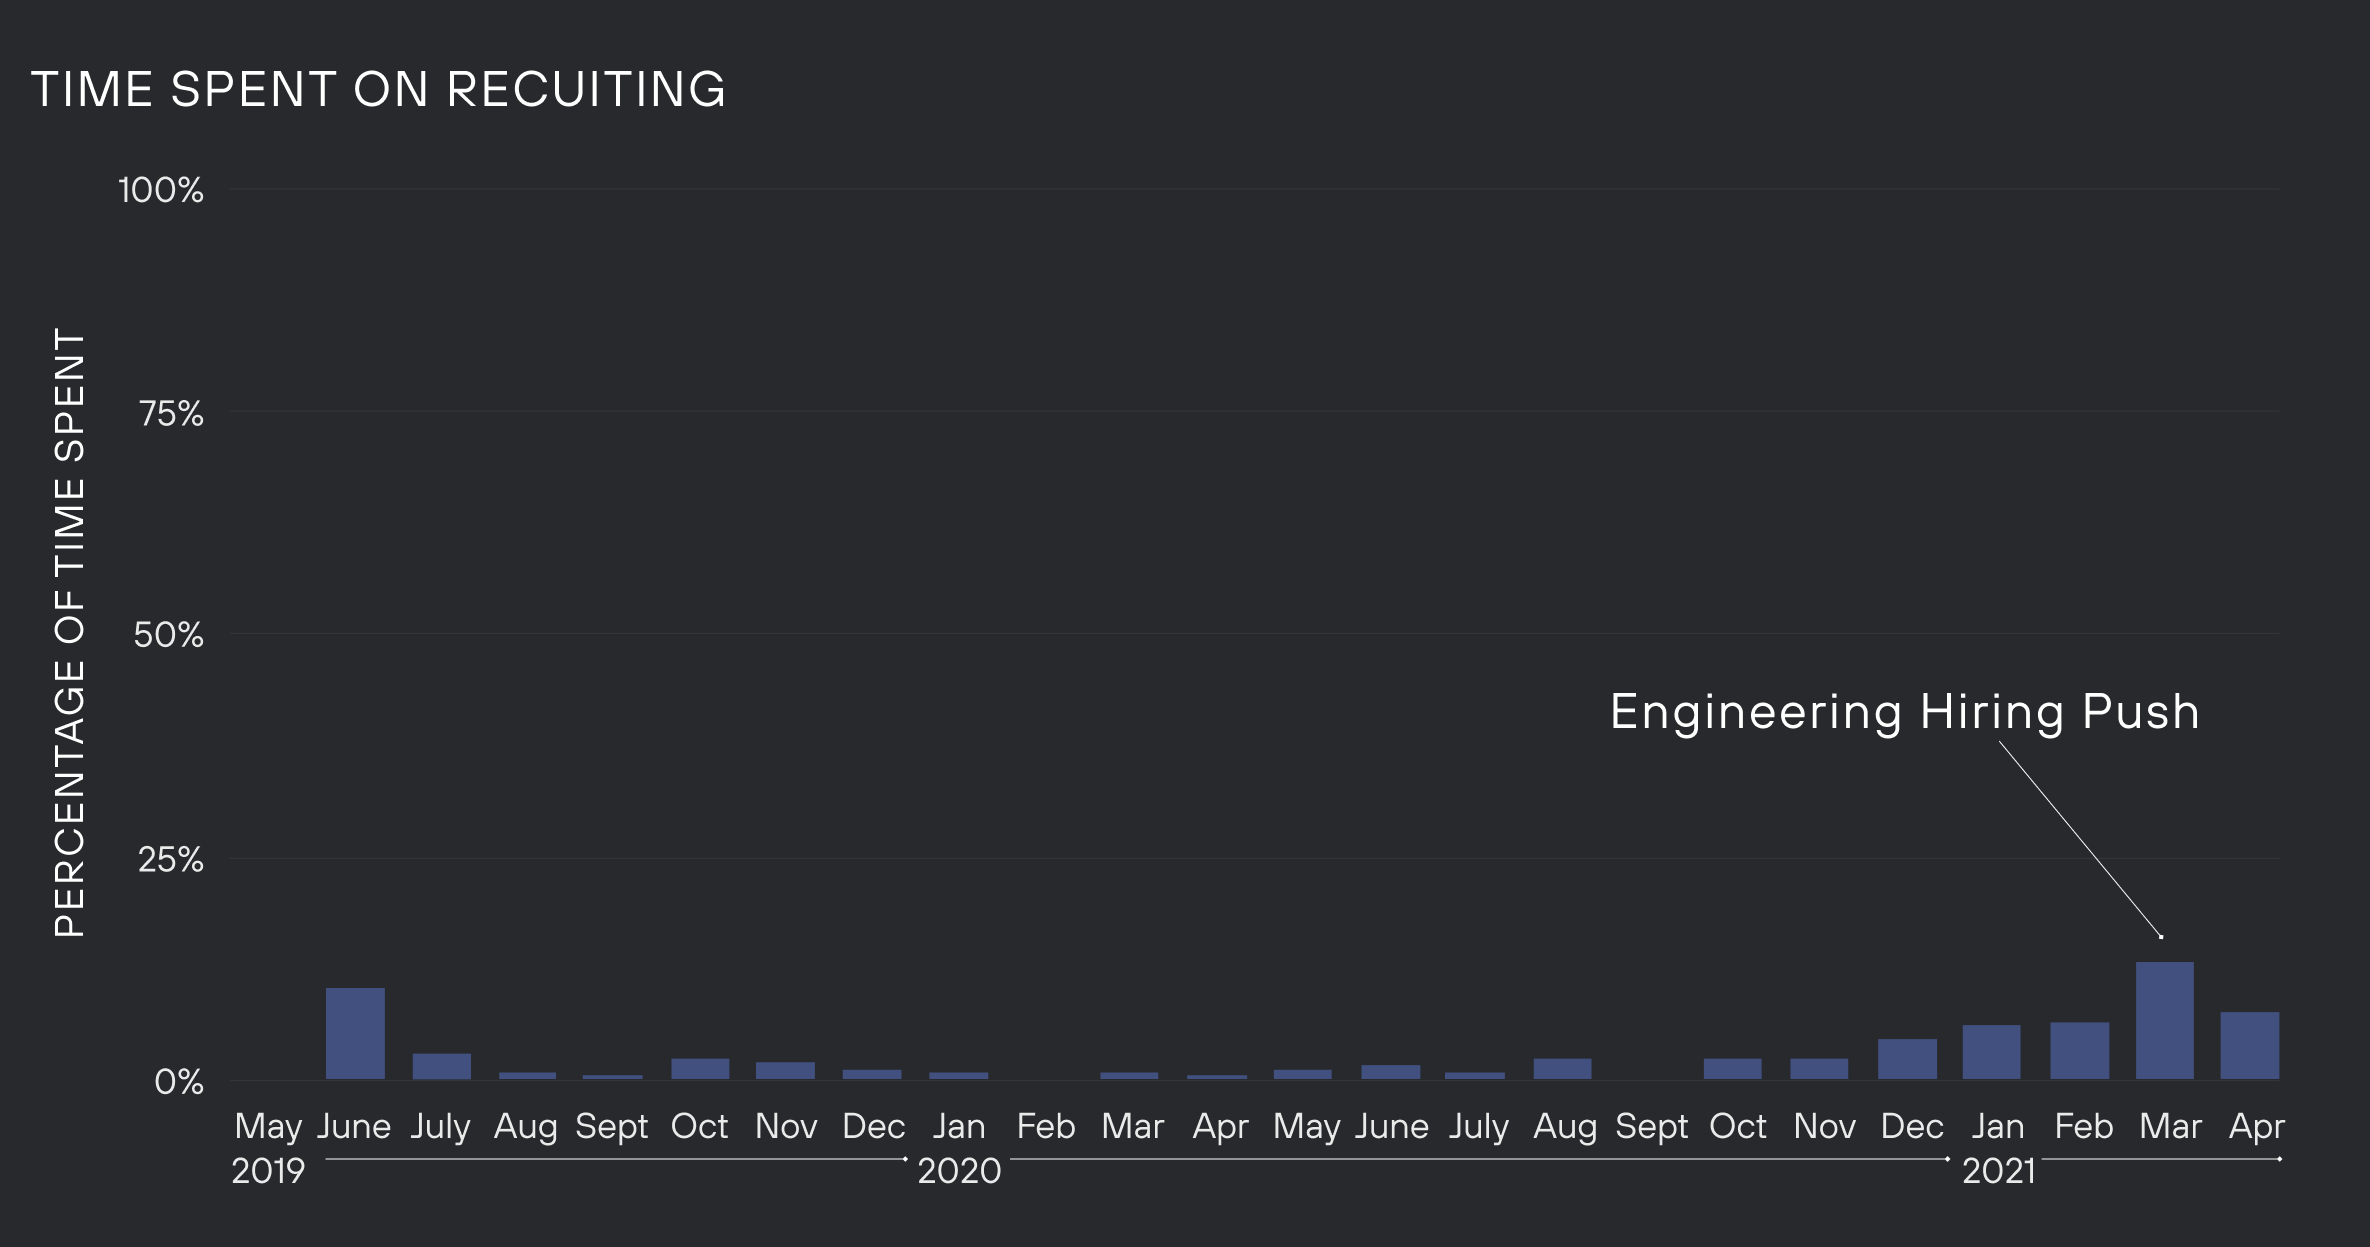 Graph of time spent on recruiting